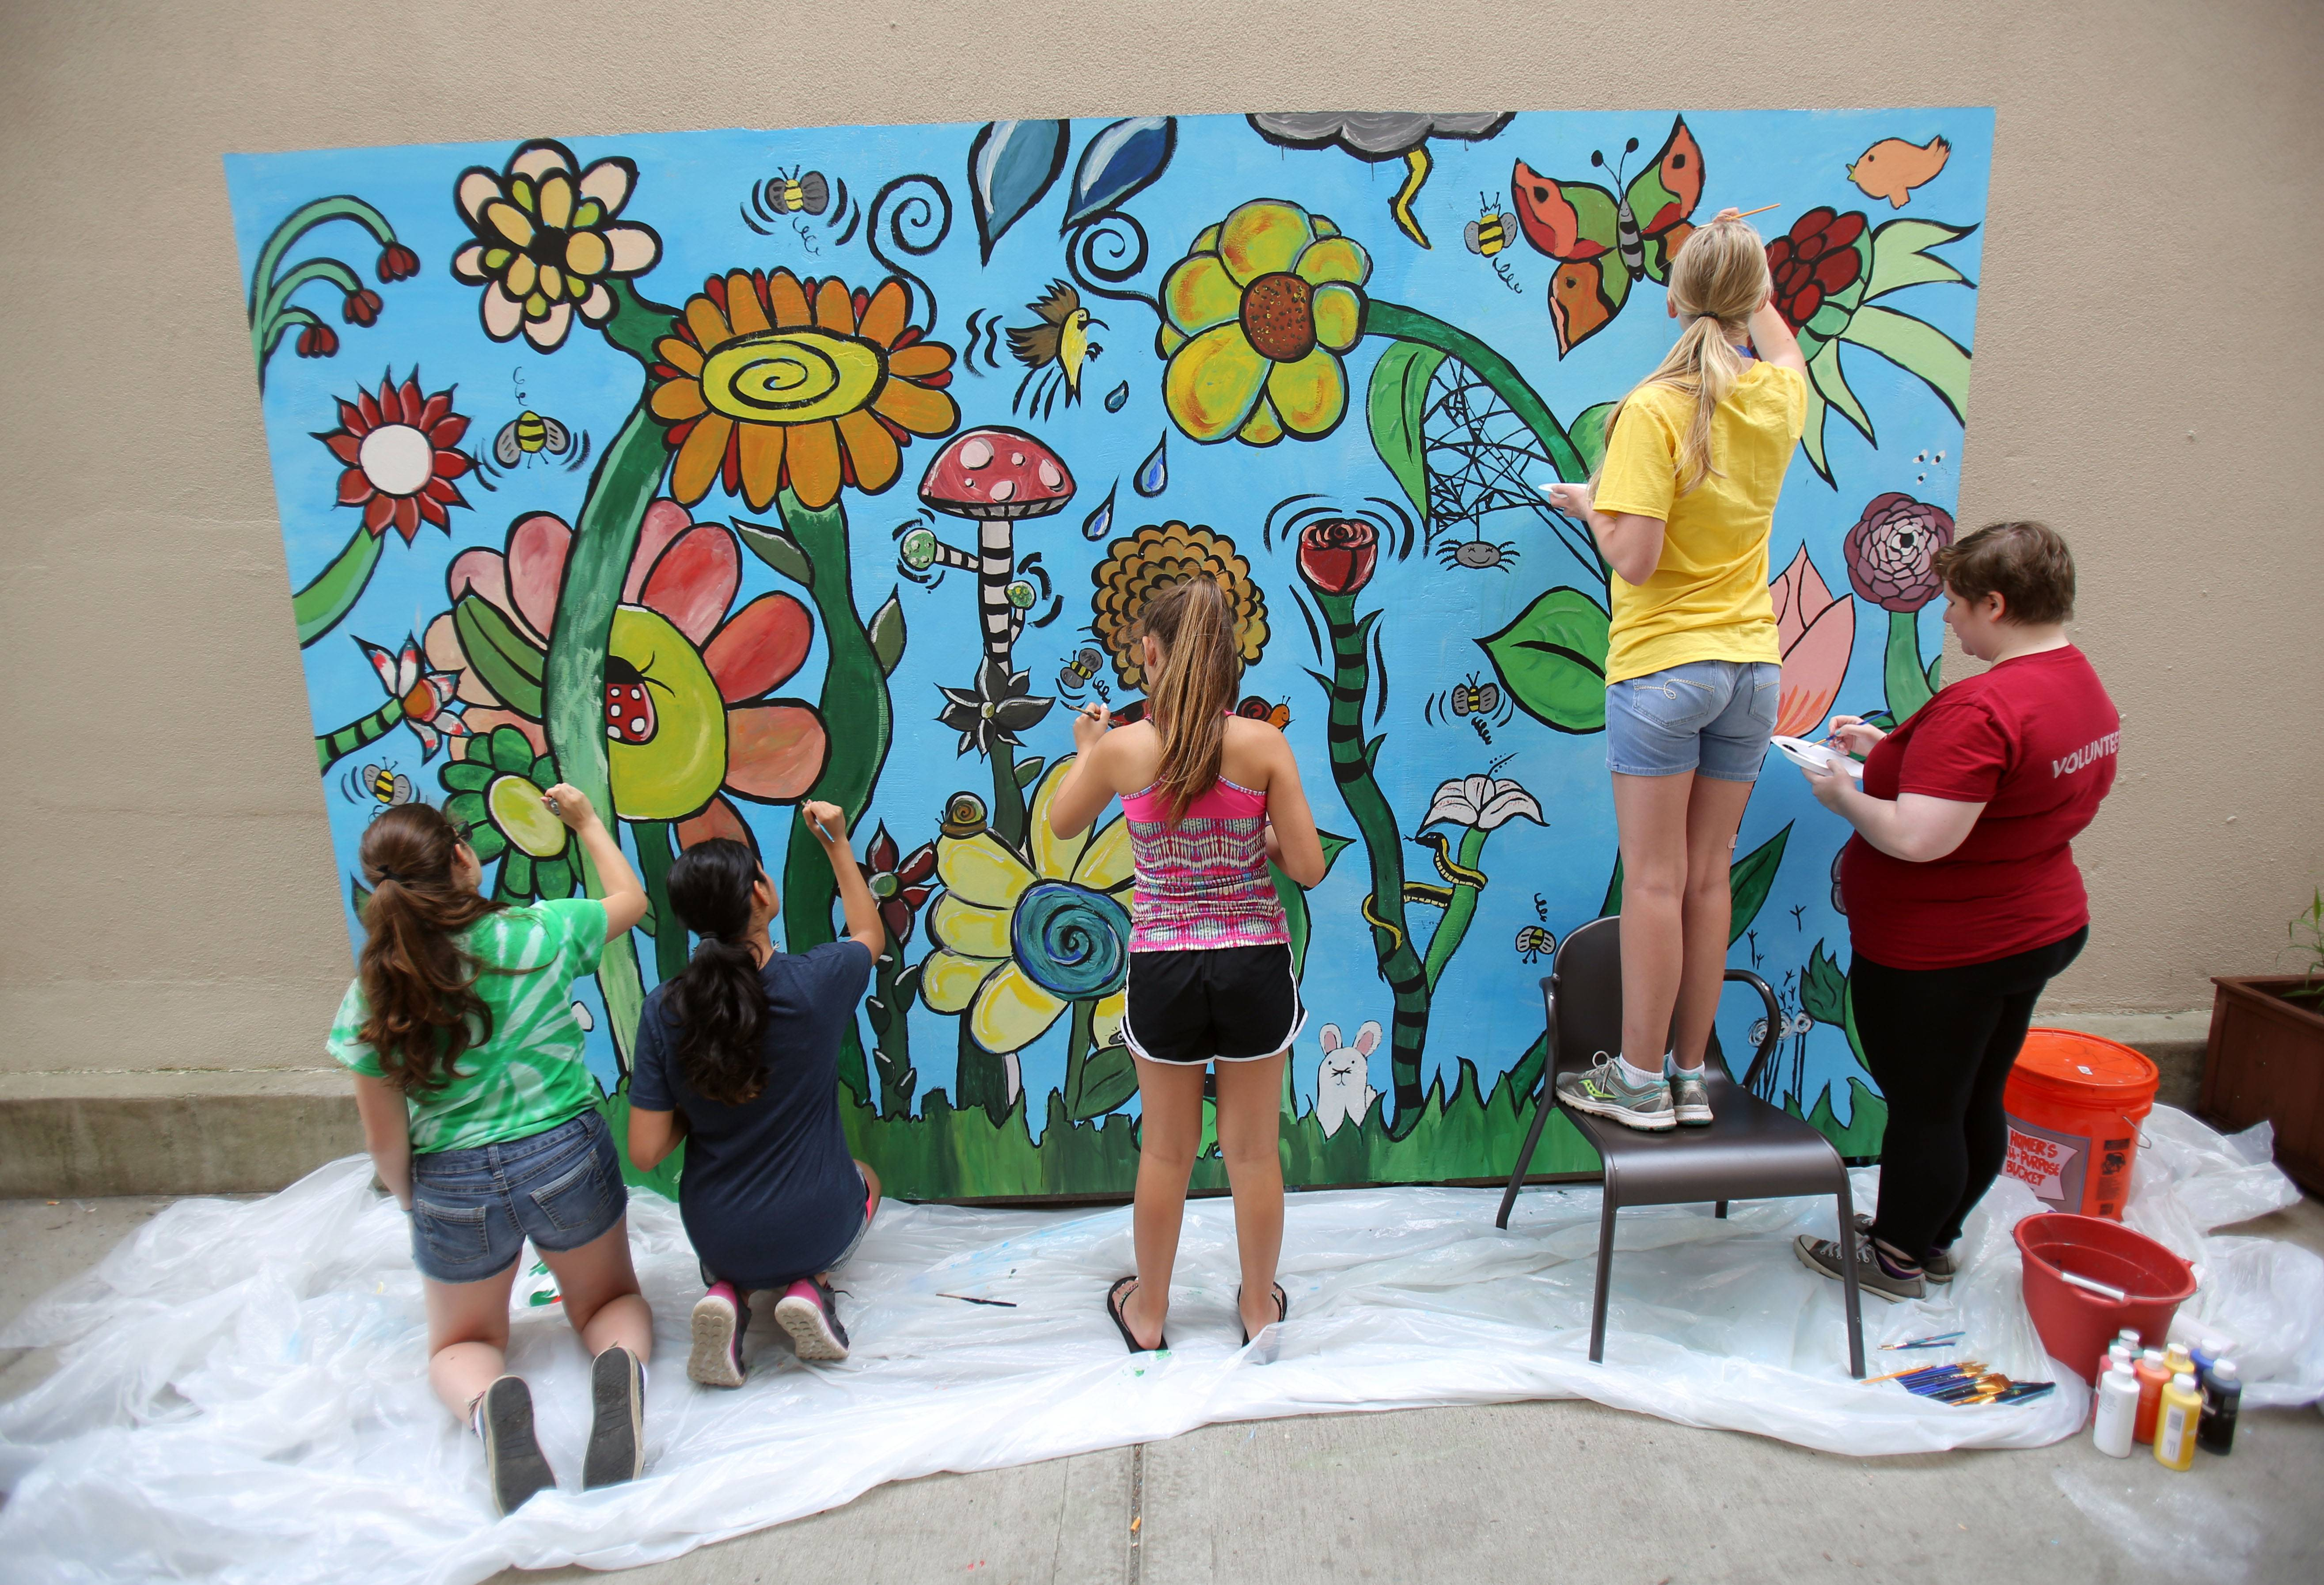 Kids from the David Adler Music and Arts Center summer camp paint a mural Thursday in Artists Alley — a walkway between Shakou and Milwalky Taco restaurants in downtown Libertyville.